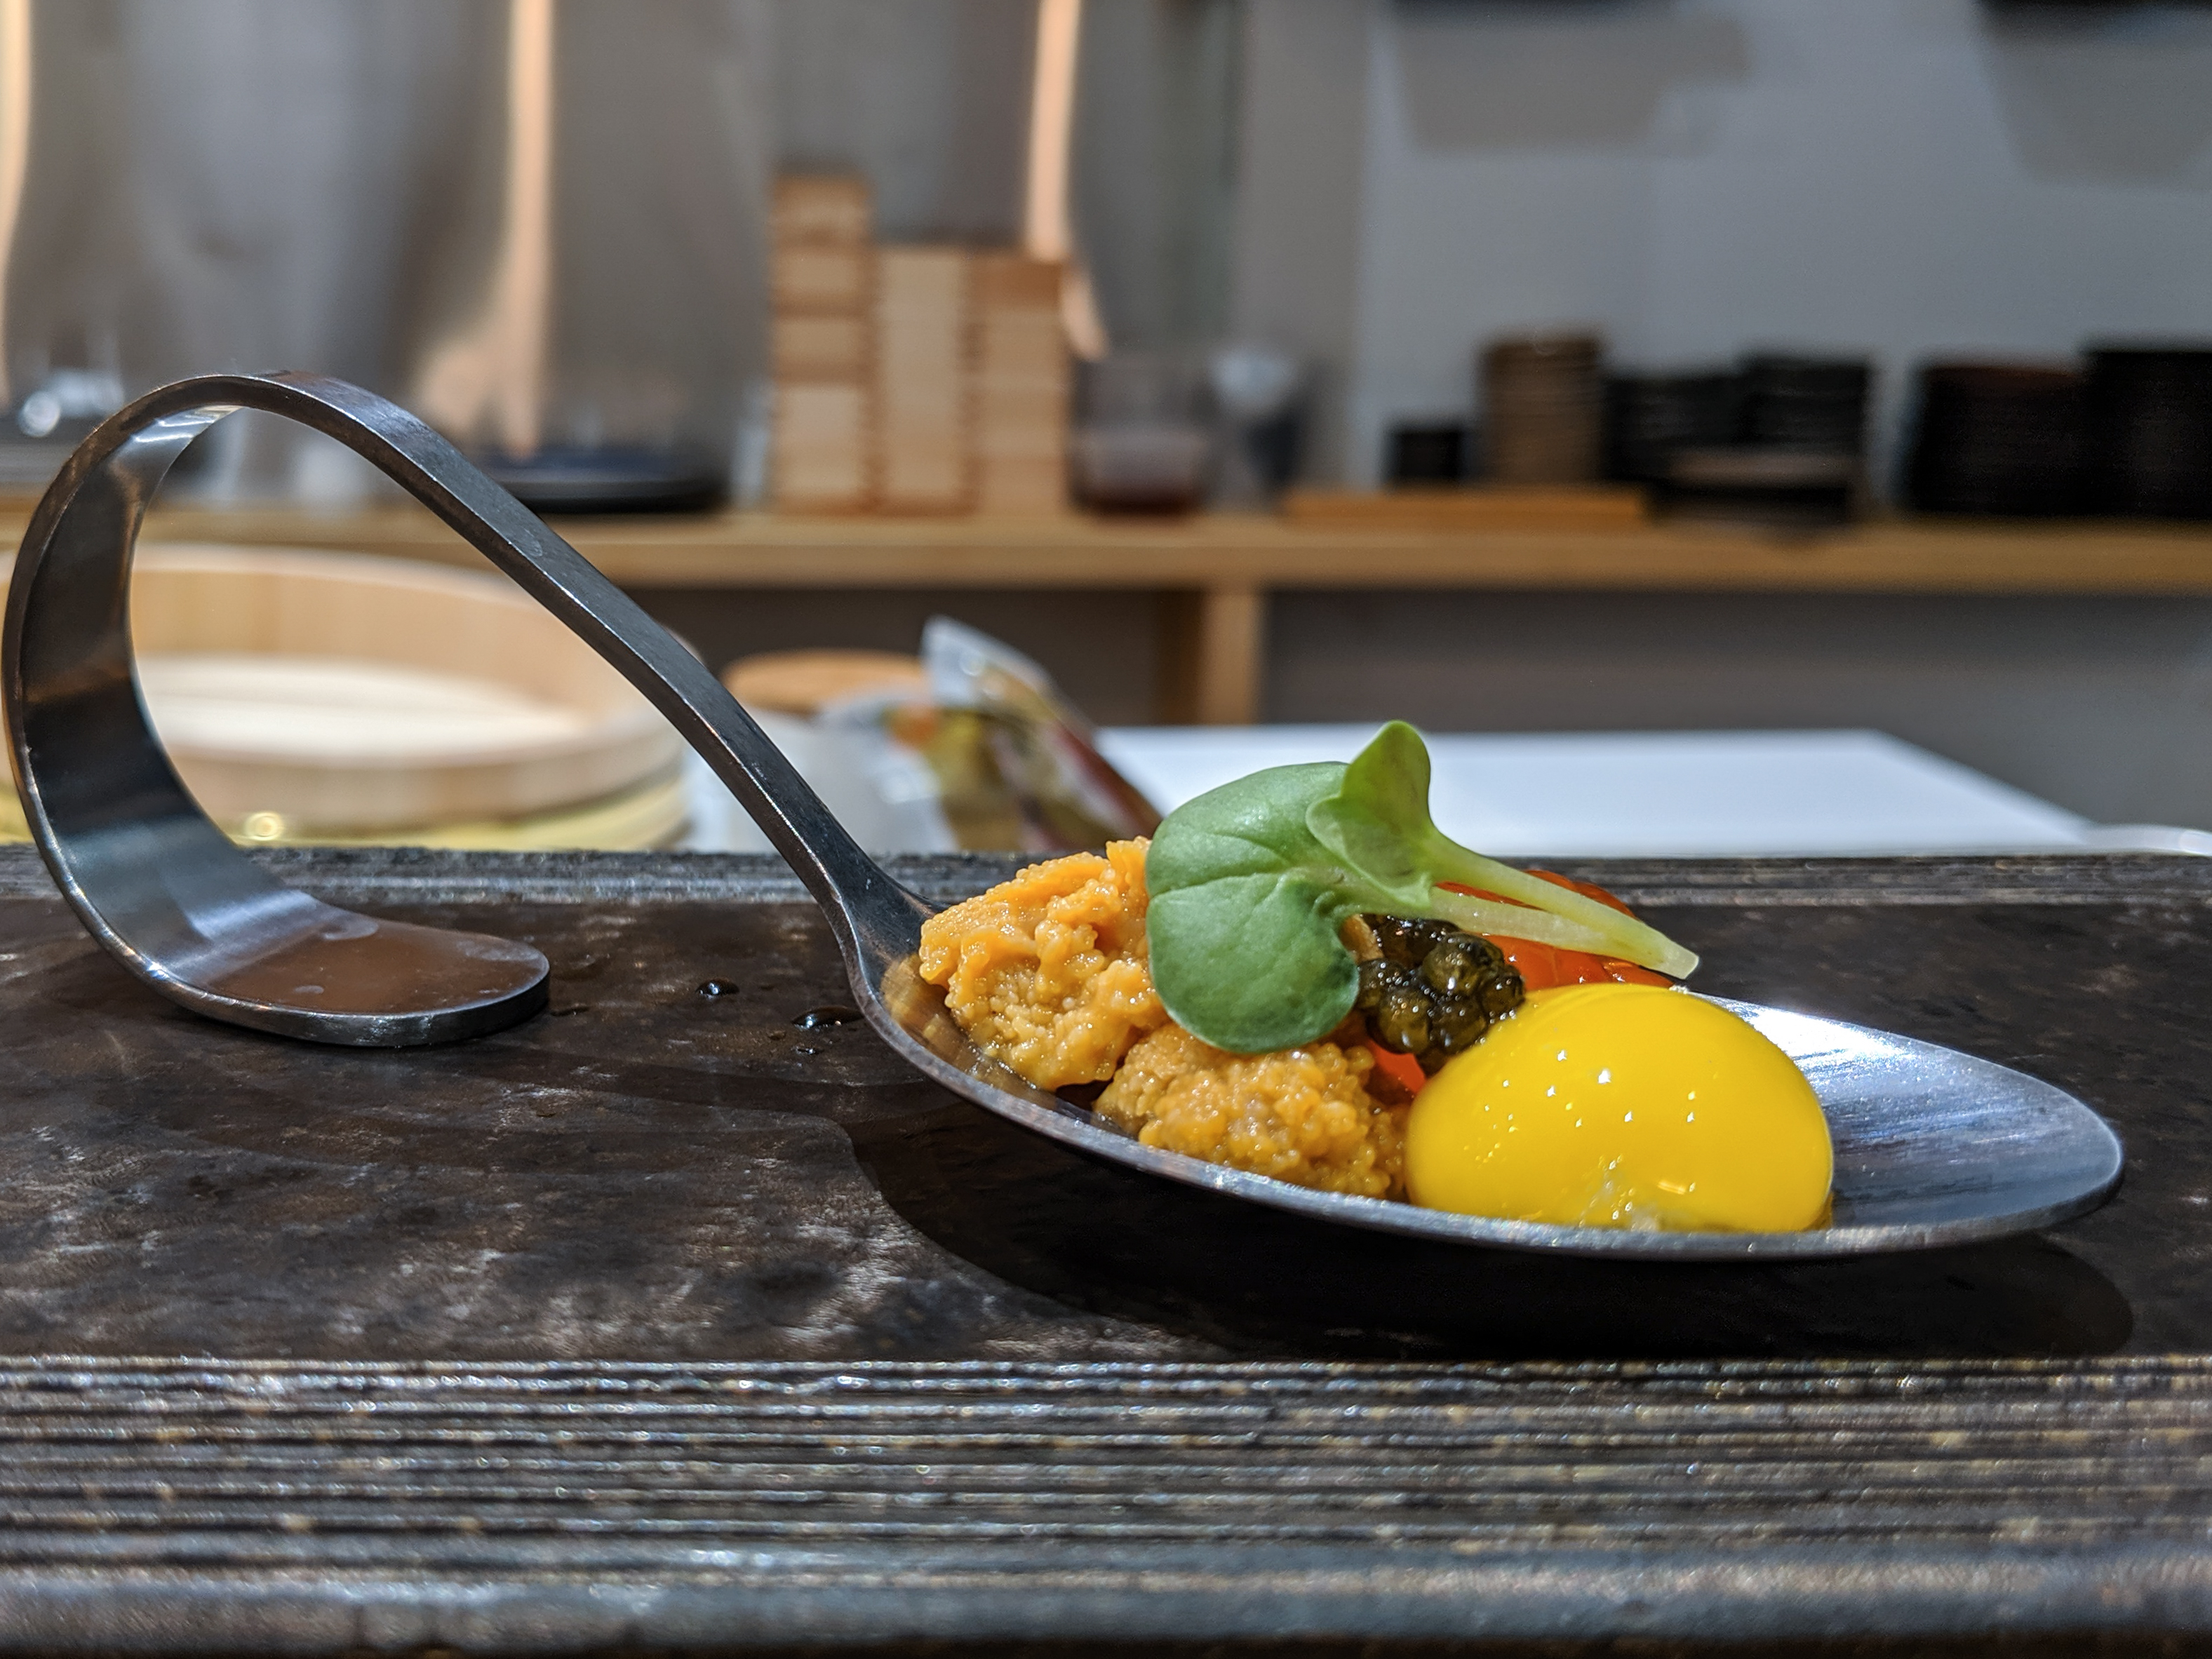 Uni, caviar, and a quail egg yolk are perched delicately on a curved metal spoon